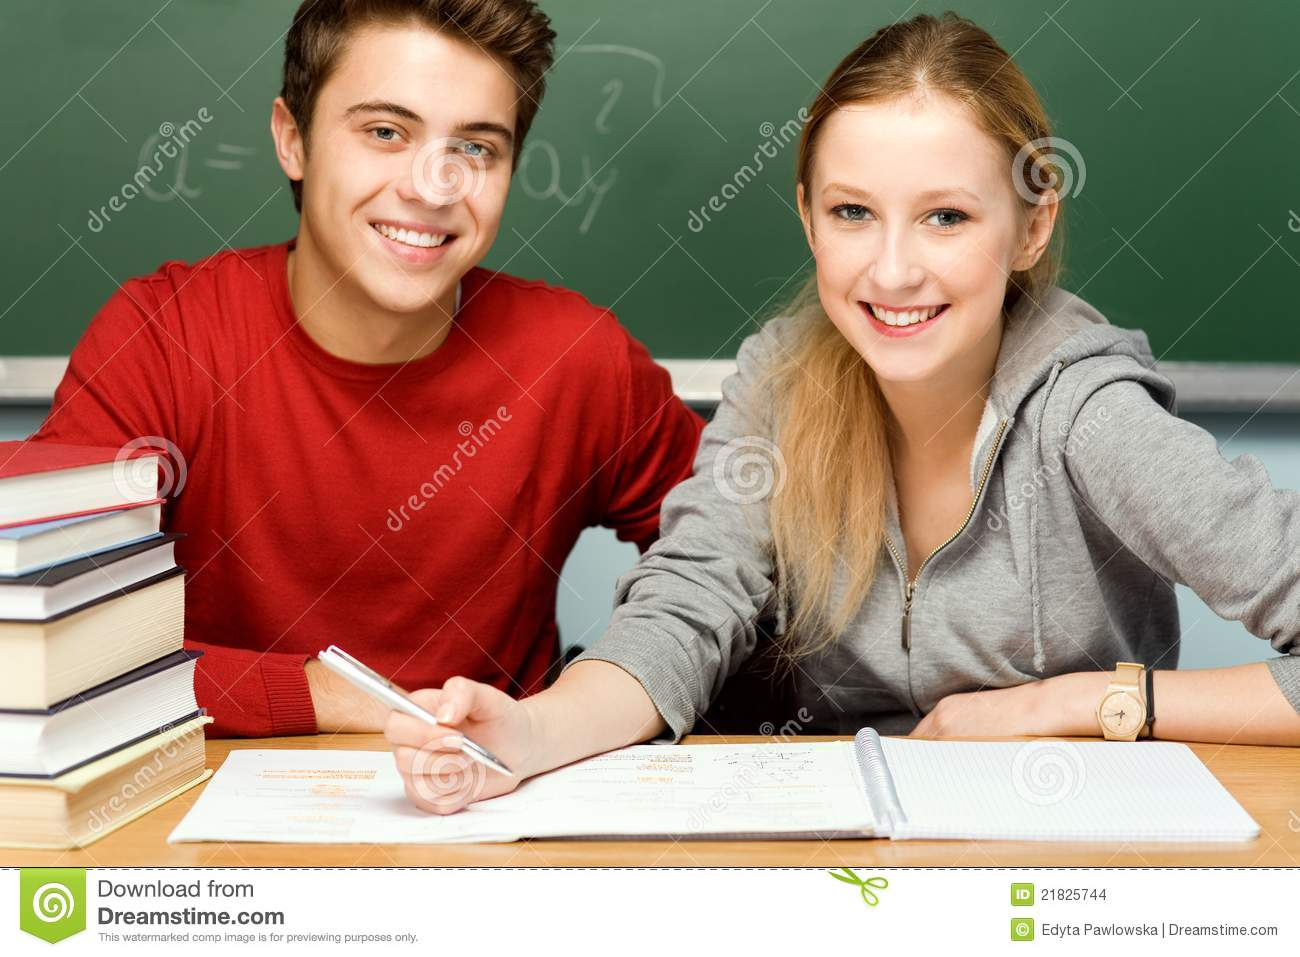 Homework does it help students learn